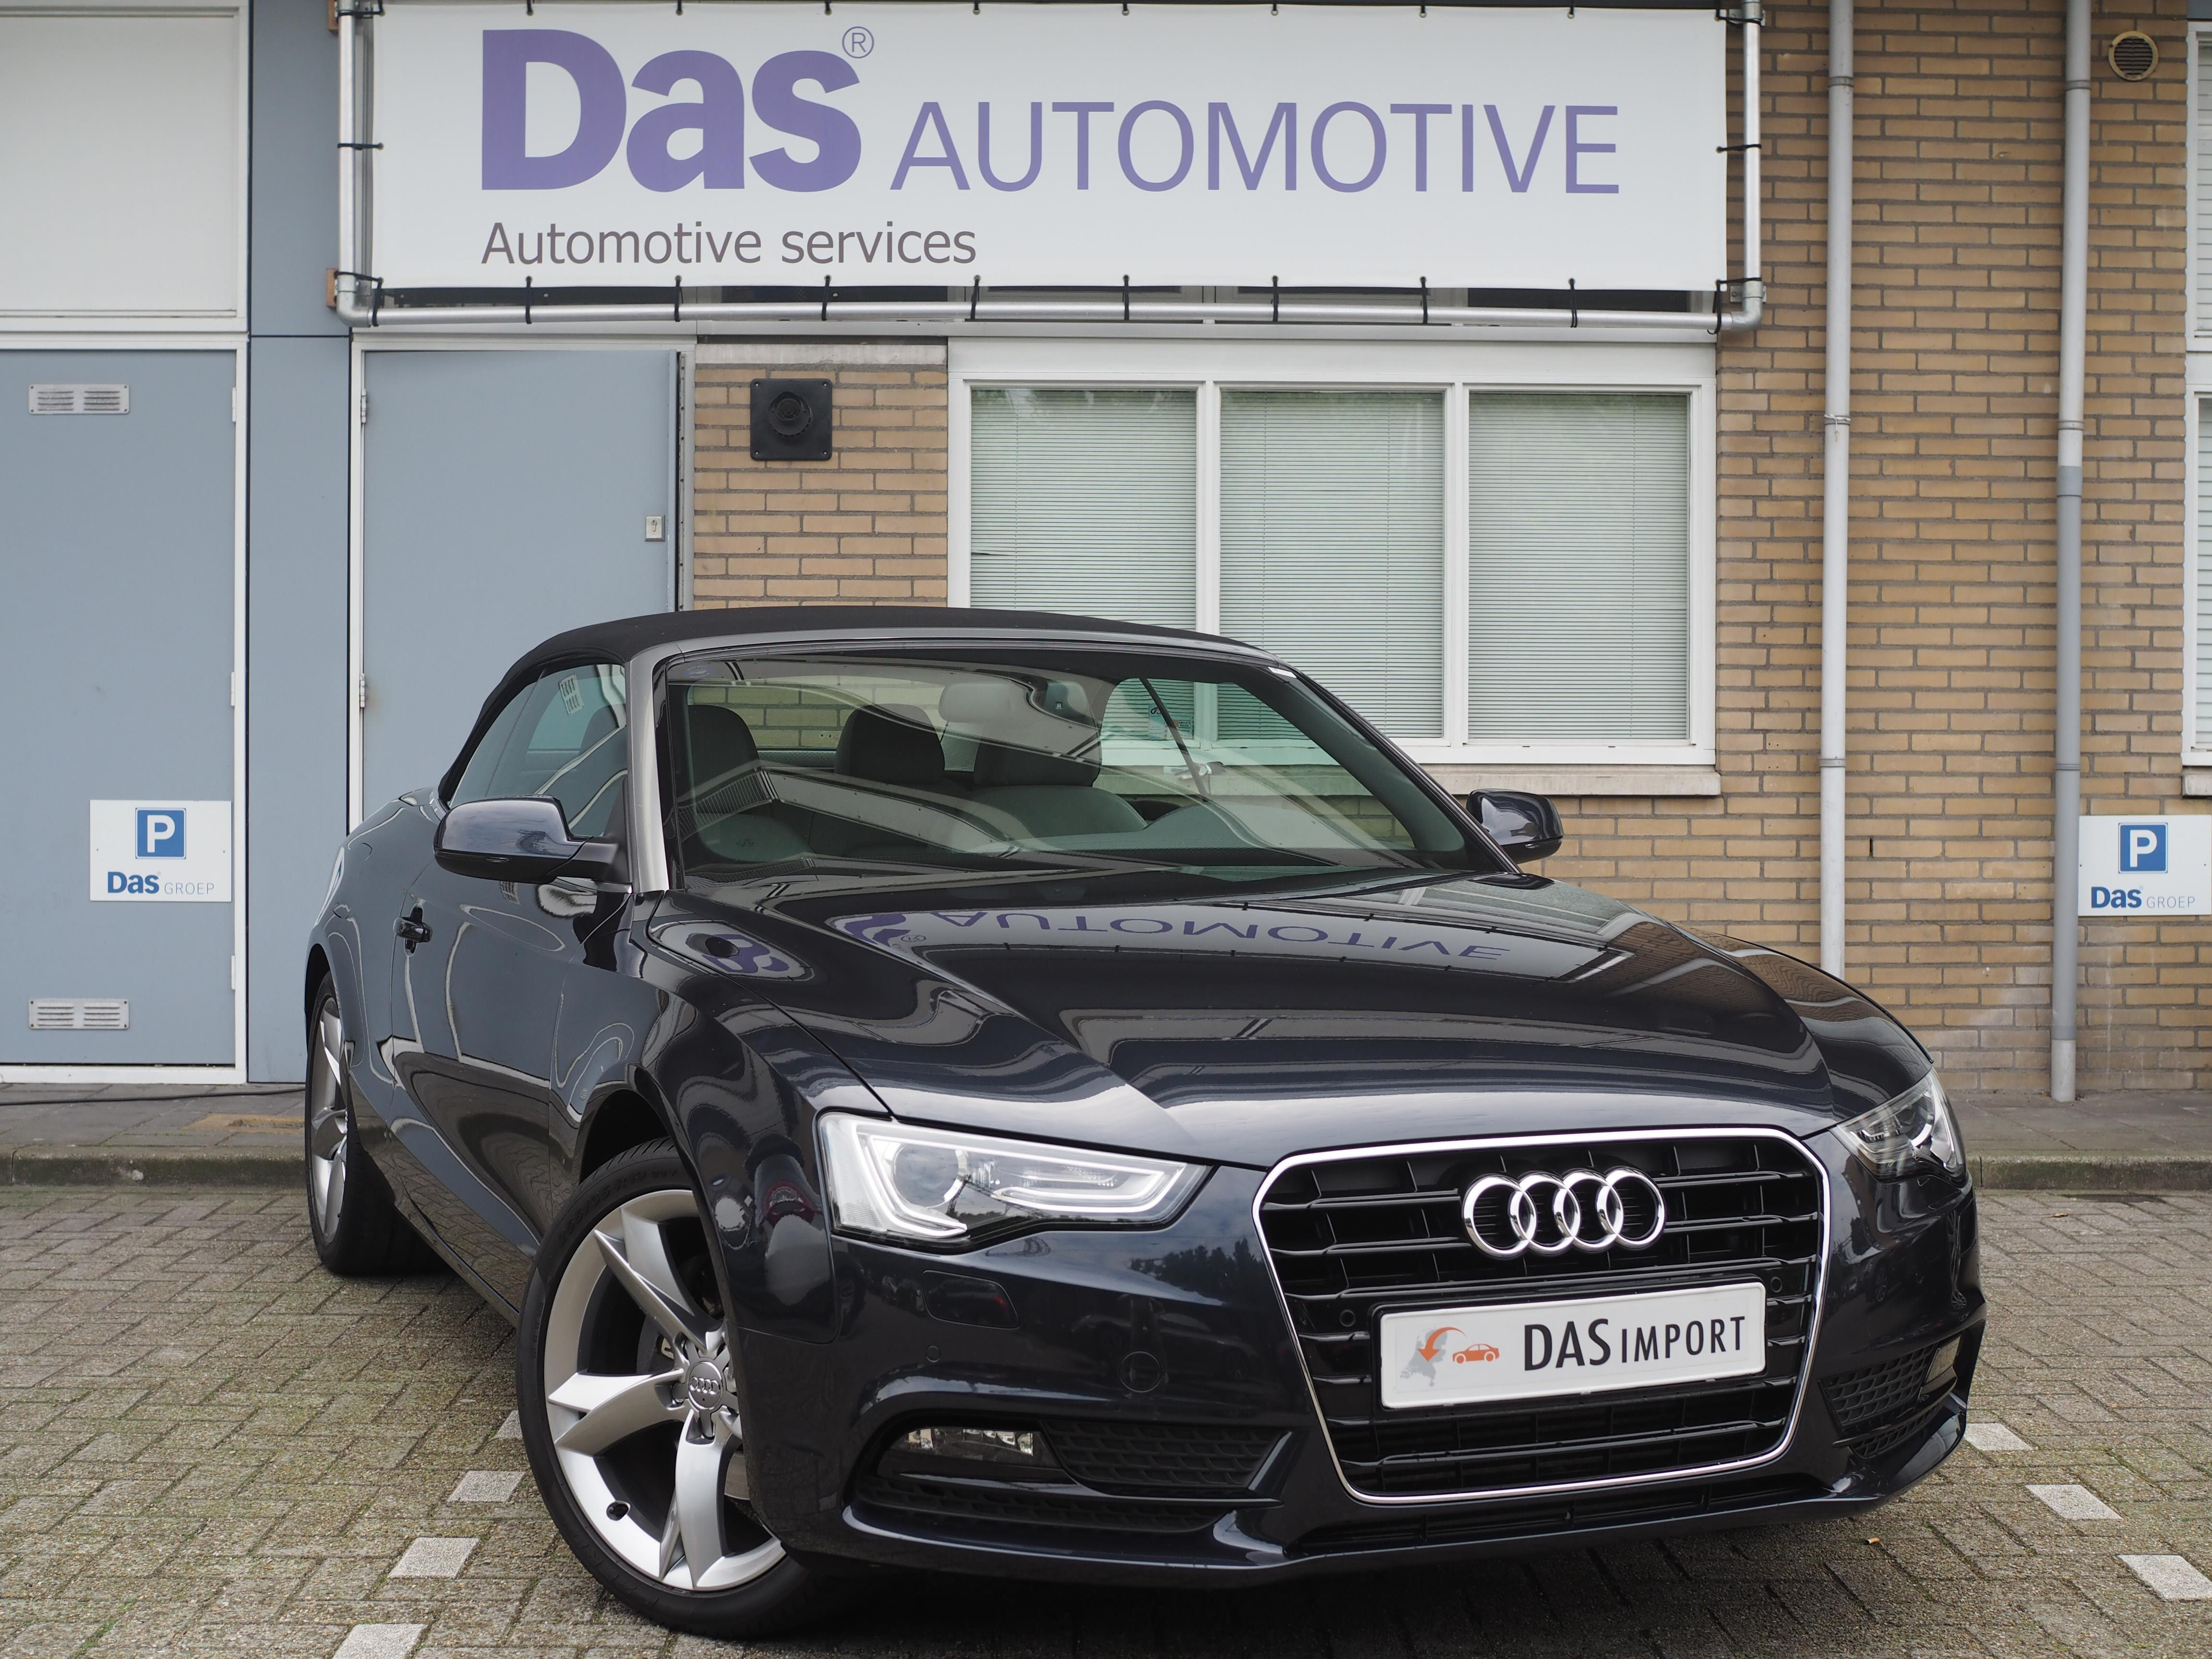 Importauto: Audi A5 Cabriolet 2.0 TFSI 155kW multitronic 2/2012